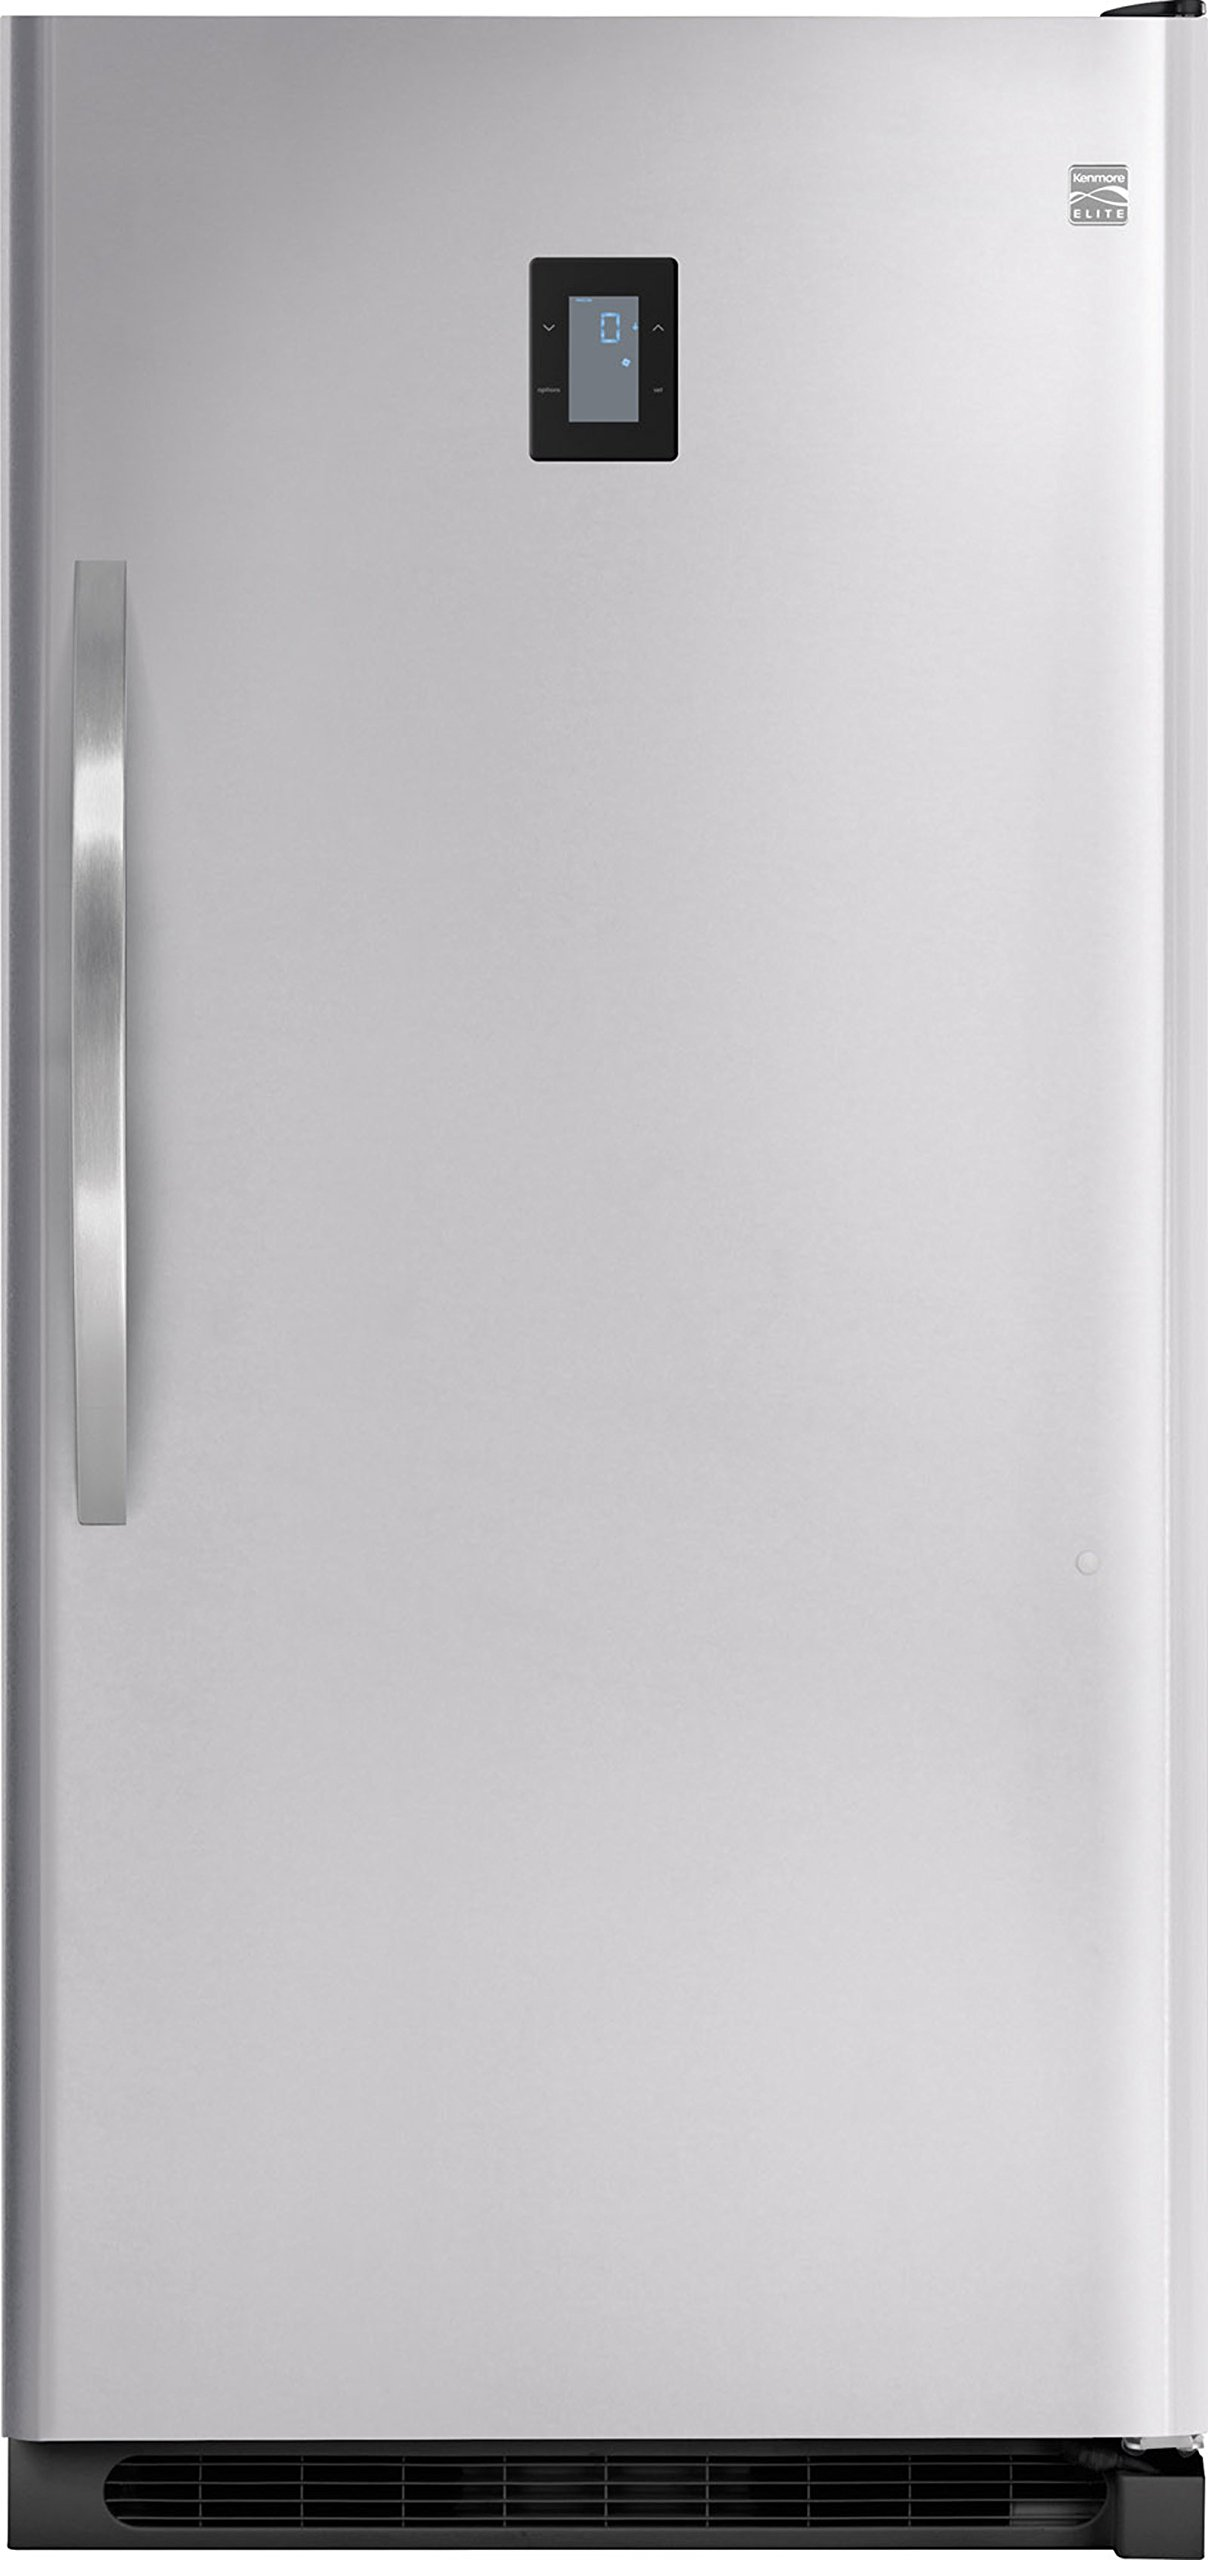 Kenmore Elite 27003 20.5 cu. ft. Upright Freezer in Stainless Steel, includes delivery and hookup (Available in select cities only)